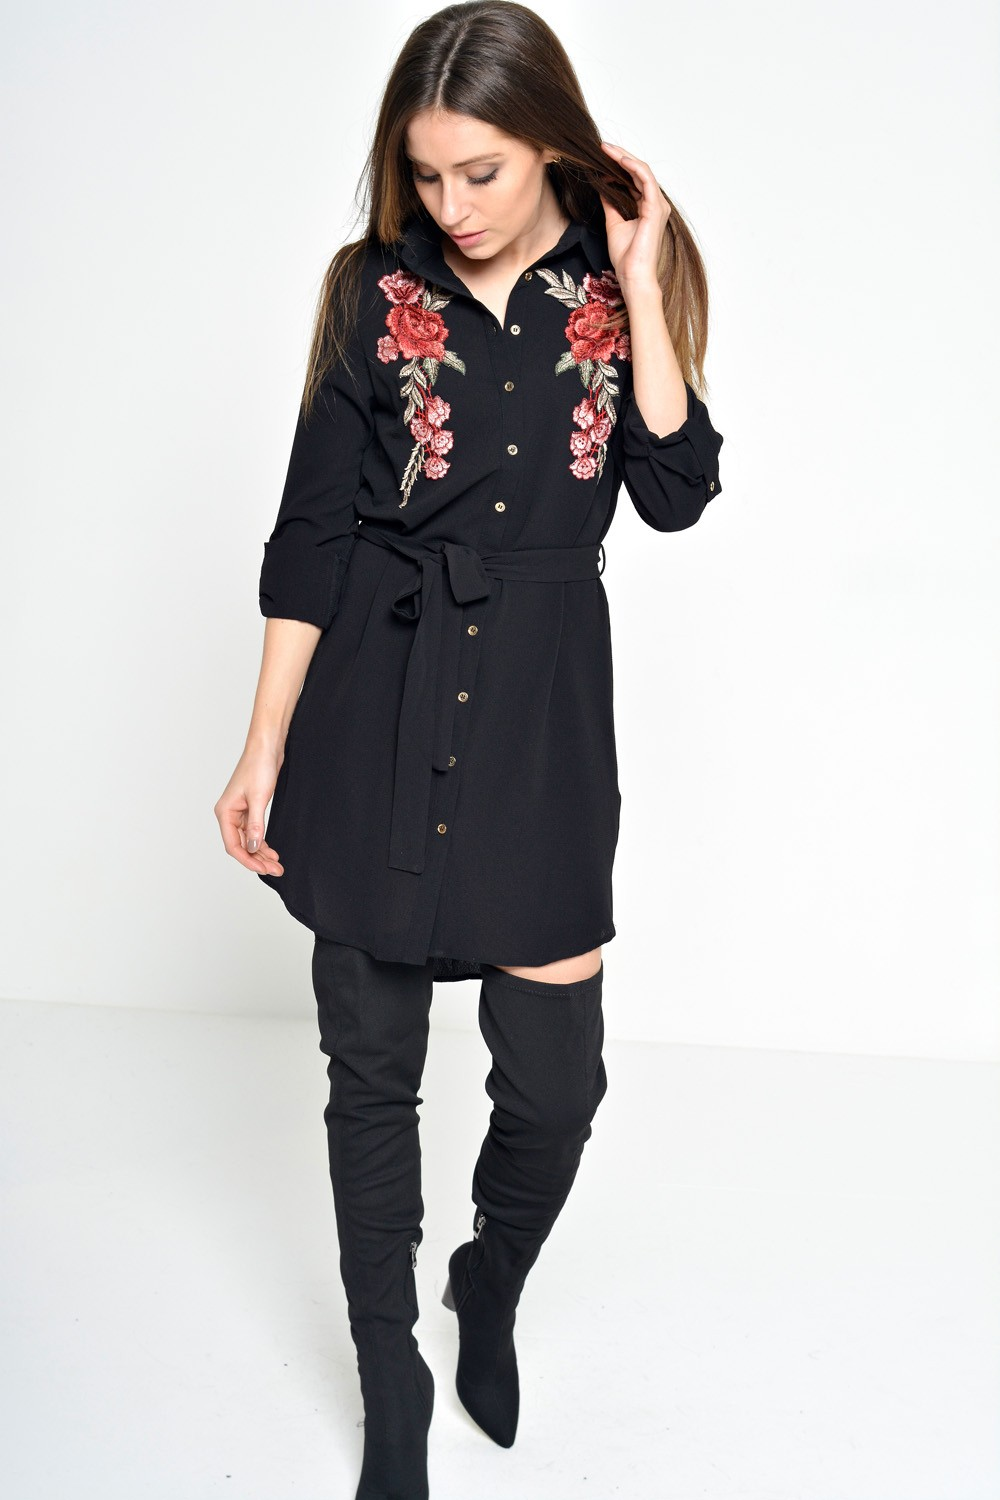 Lara Embroidered Shirt Dress in Black